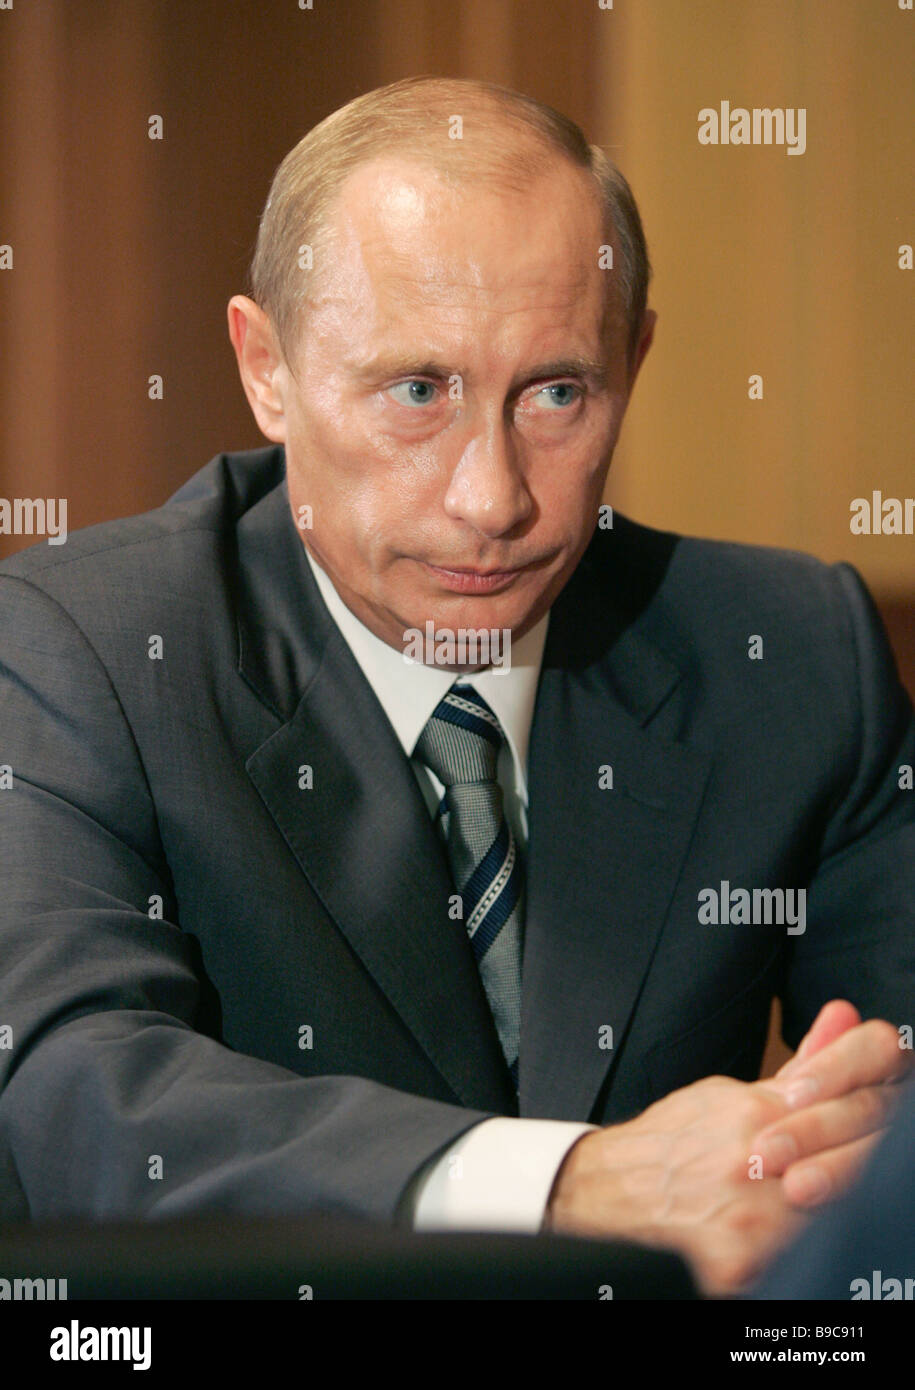 Russian President Vladimir Putin during the meeting discussing the ways of fighting economic crimes - Stock Image